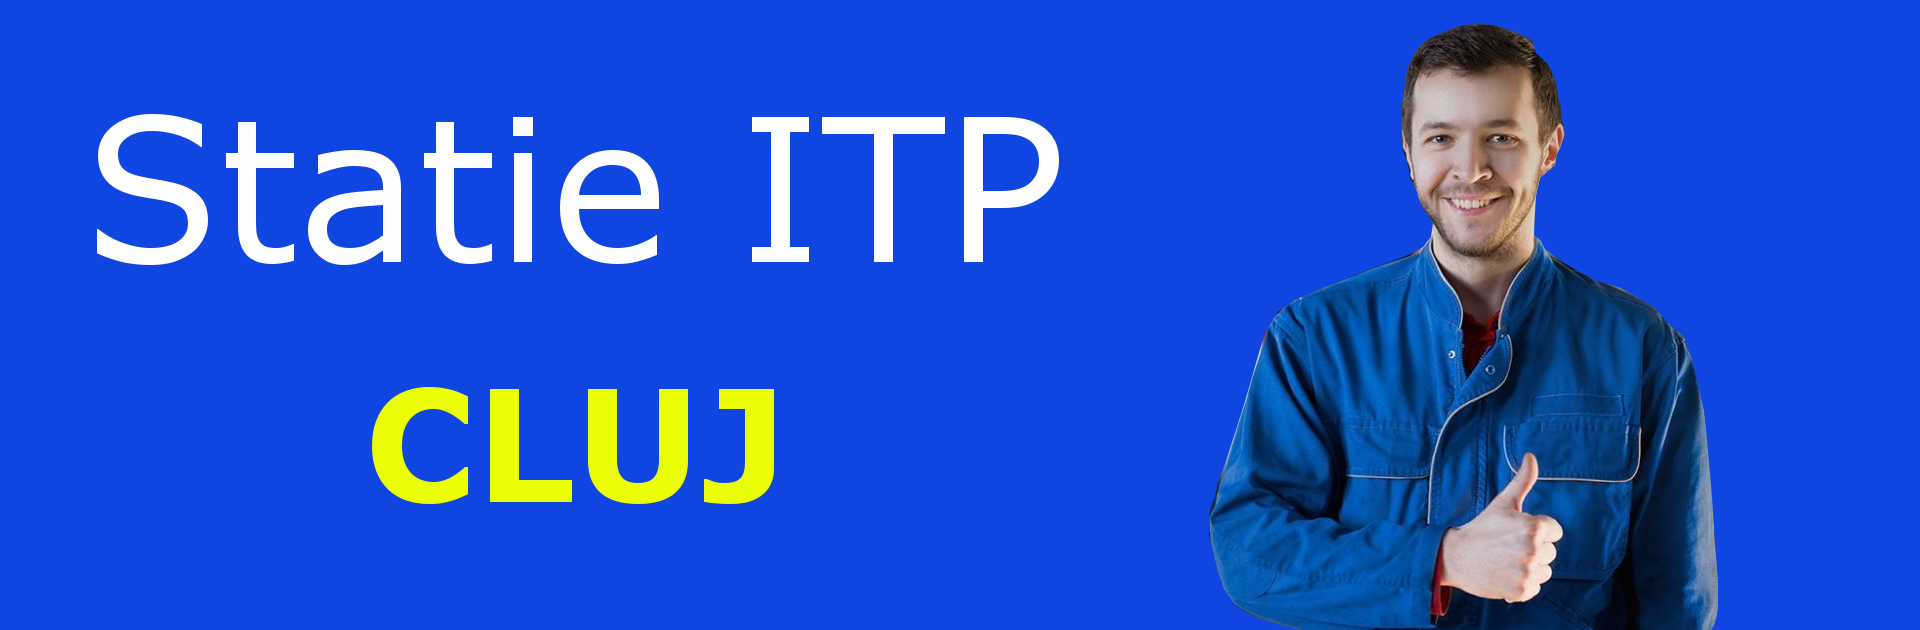 Banner ITP CLUJ